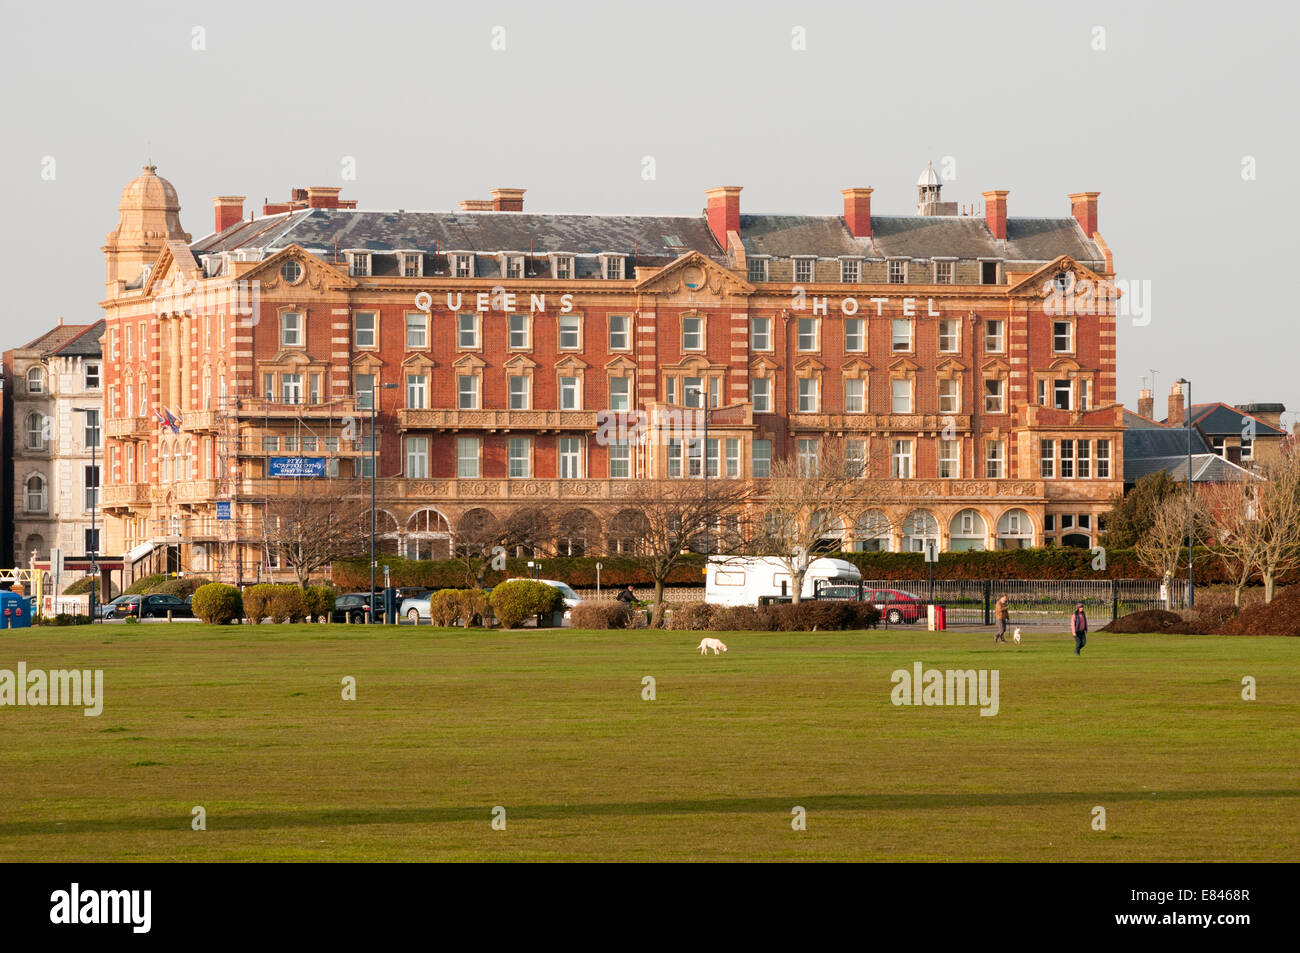 The Queens Hotel Portsmouth And Southsea Hampshire England Stock Photo Royalty Free Image